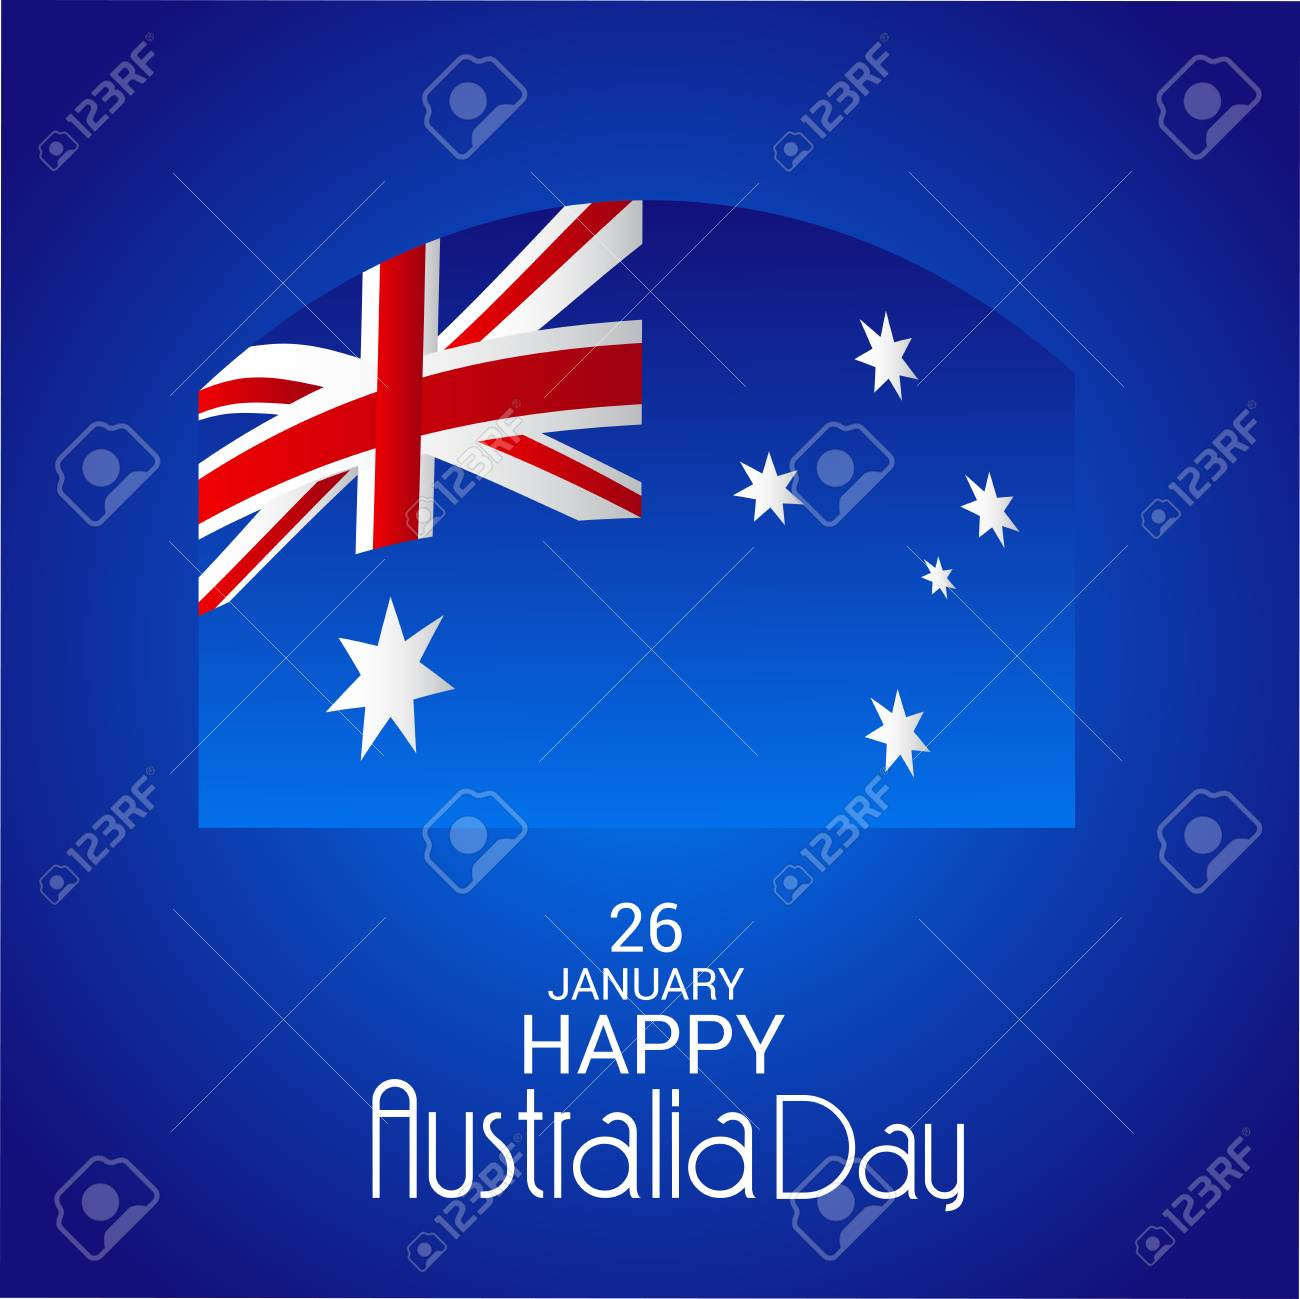 Happy australia day greeting card with australian flag design happy australia day greeting card with australian flag design stock vector 94132459 m4hsunfo